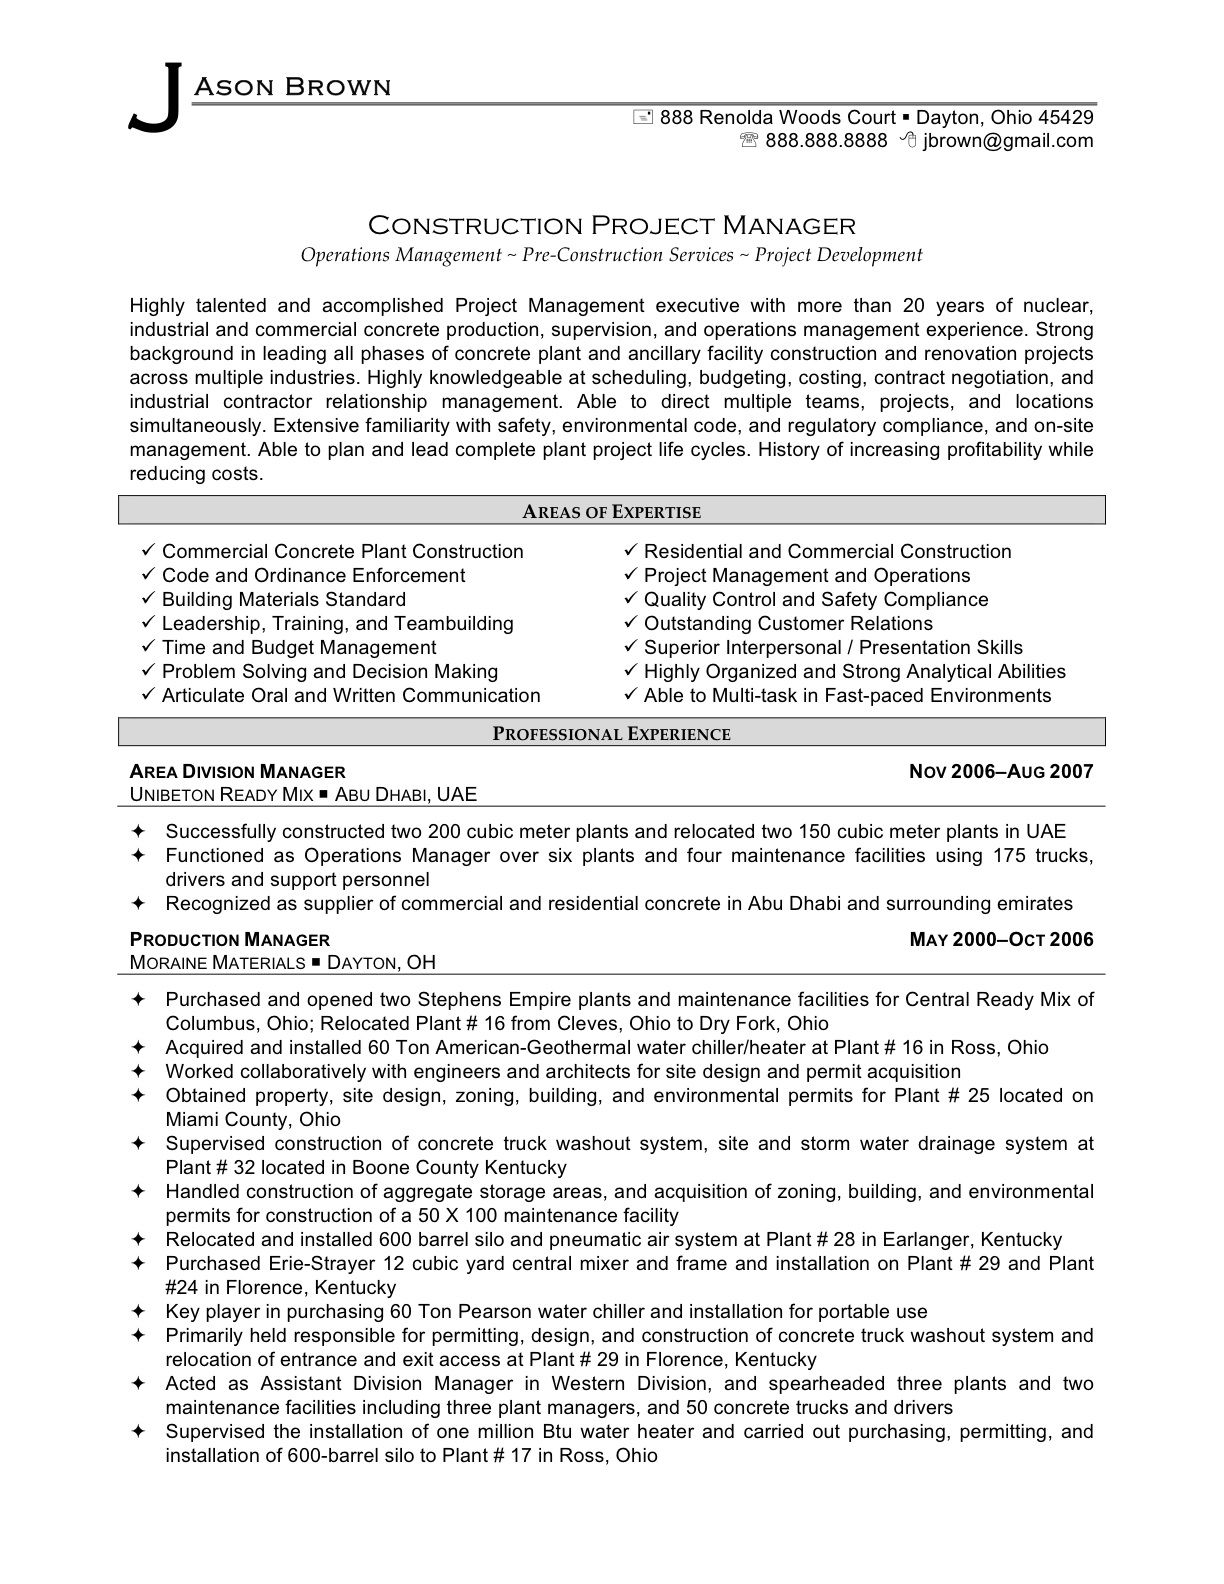 Project Management Skills Resume Resume Templates Project Manager  Residential Or Commercial